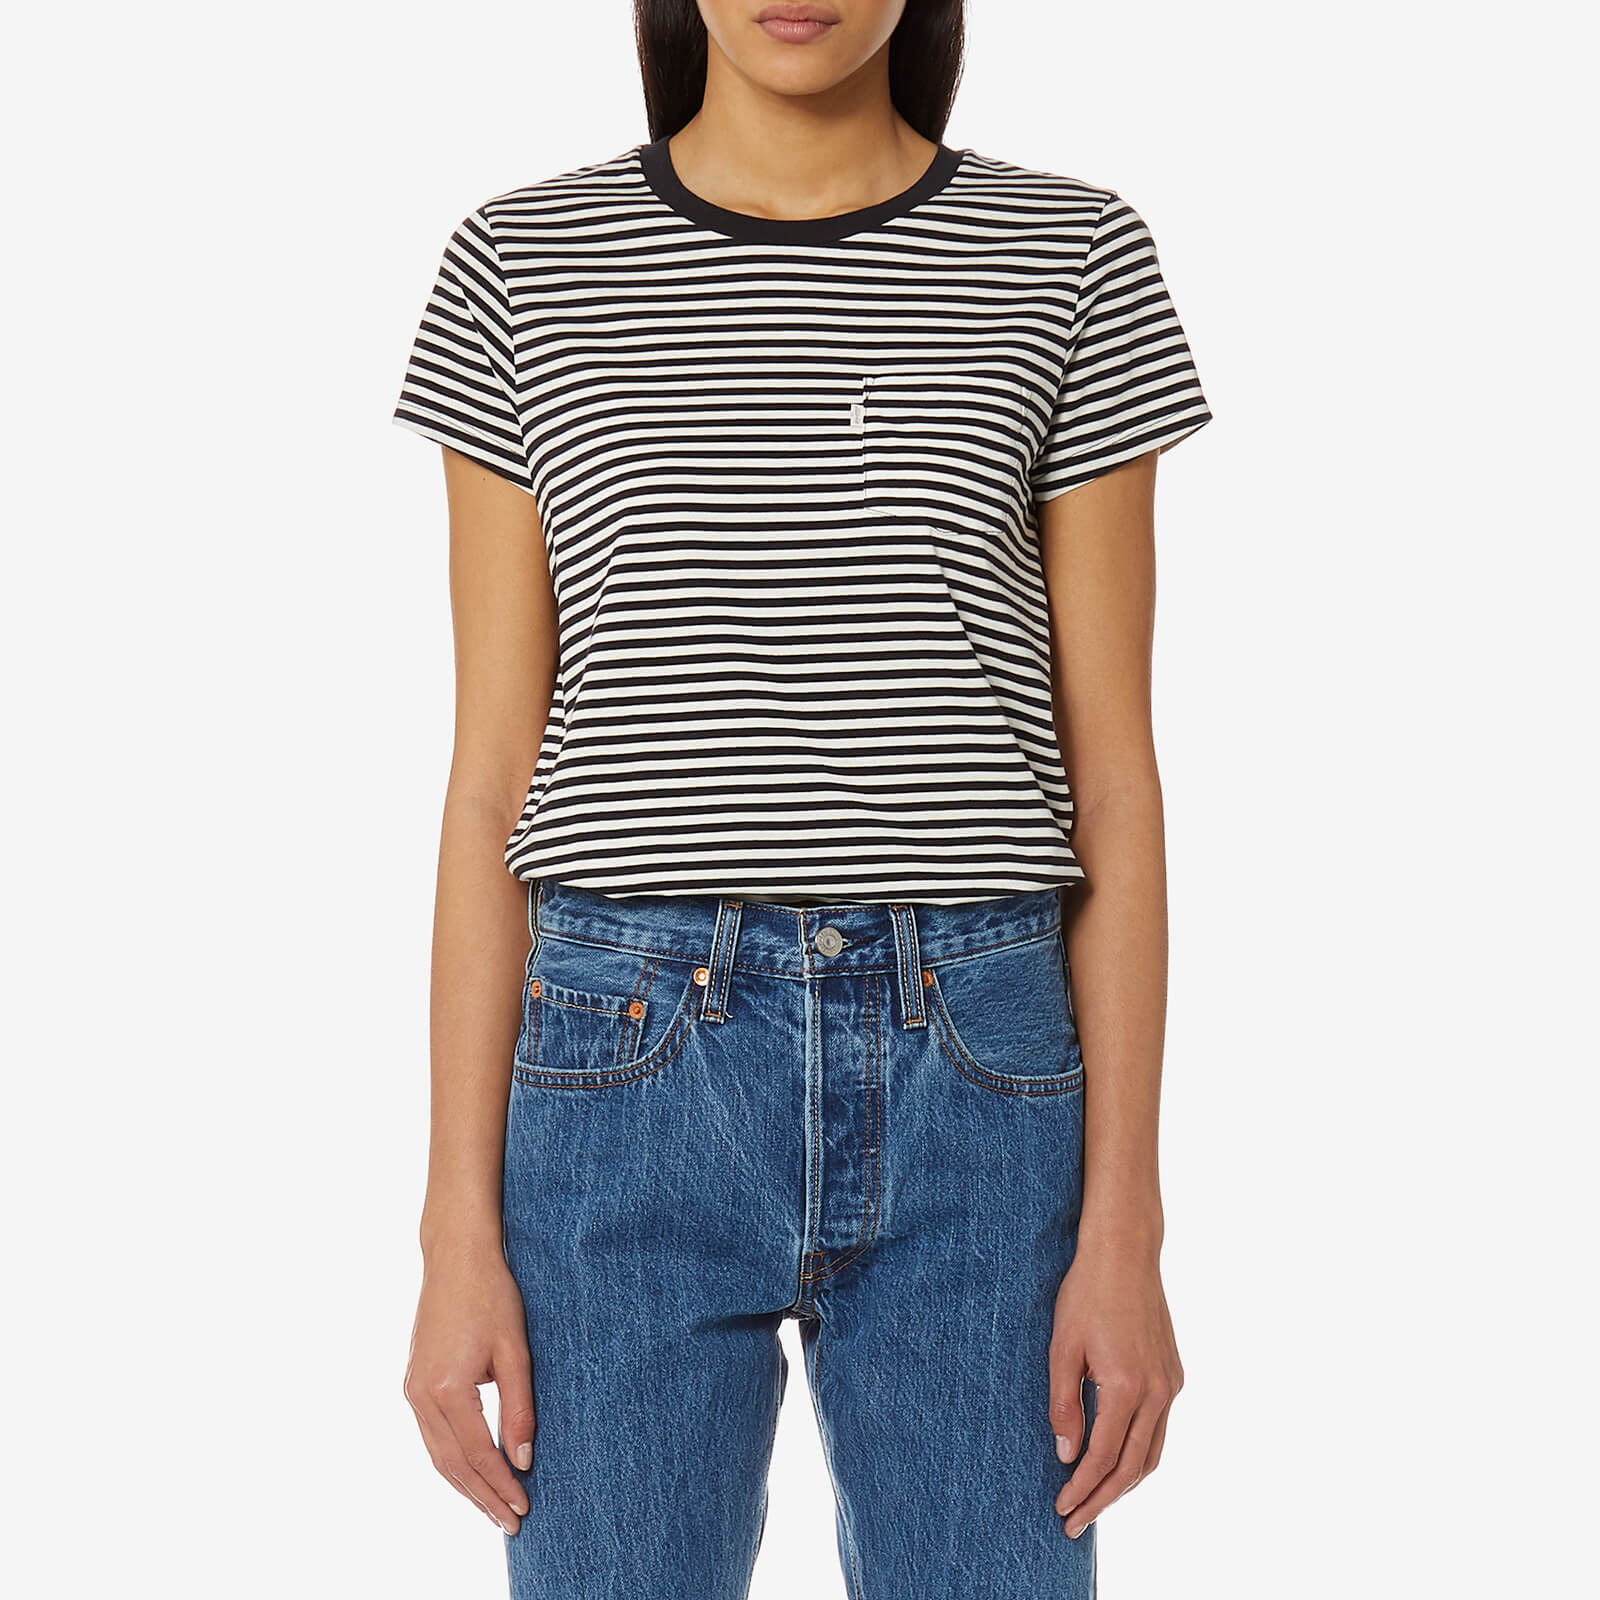 6513e92f7f7d Levi's Women's The Perfect Pocket T-Shirt - Gina Obsidian/Cloud Dancer -  Free UK Delivery over £50